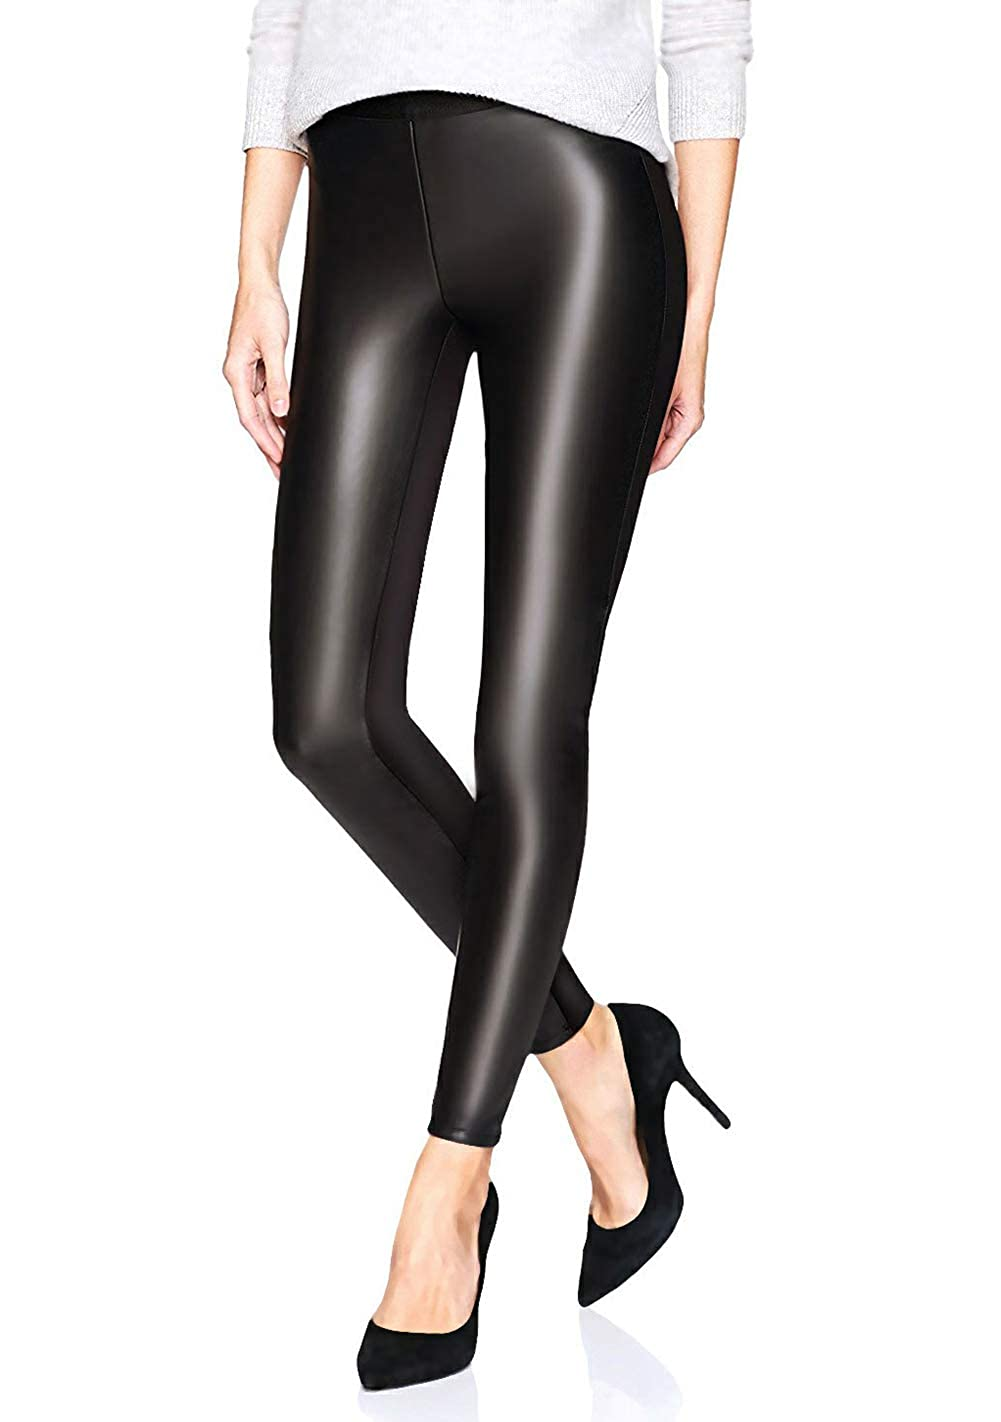 Women's Black Faux Leather High-Waisted Pants - DeluxeAdultCostumes.com